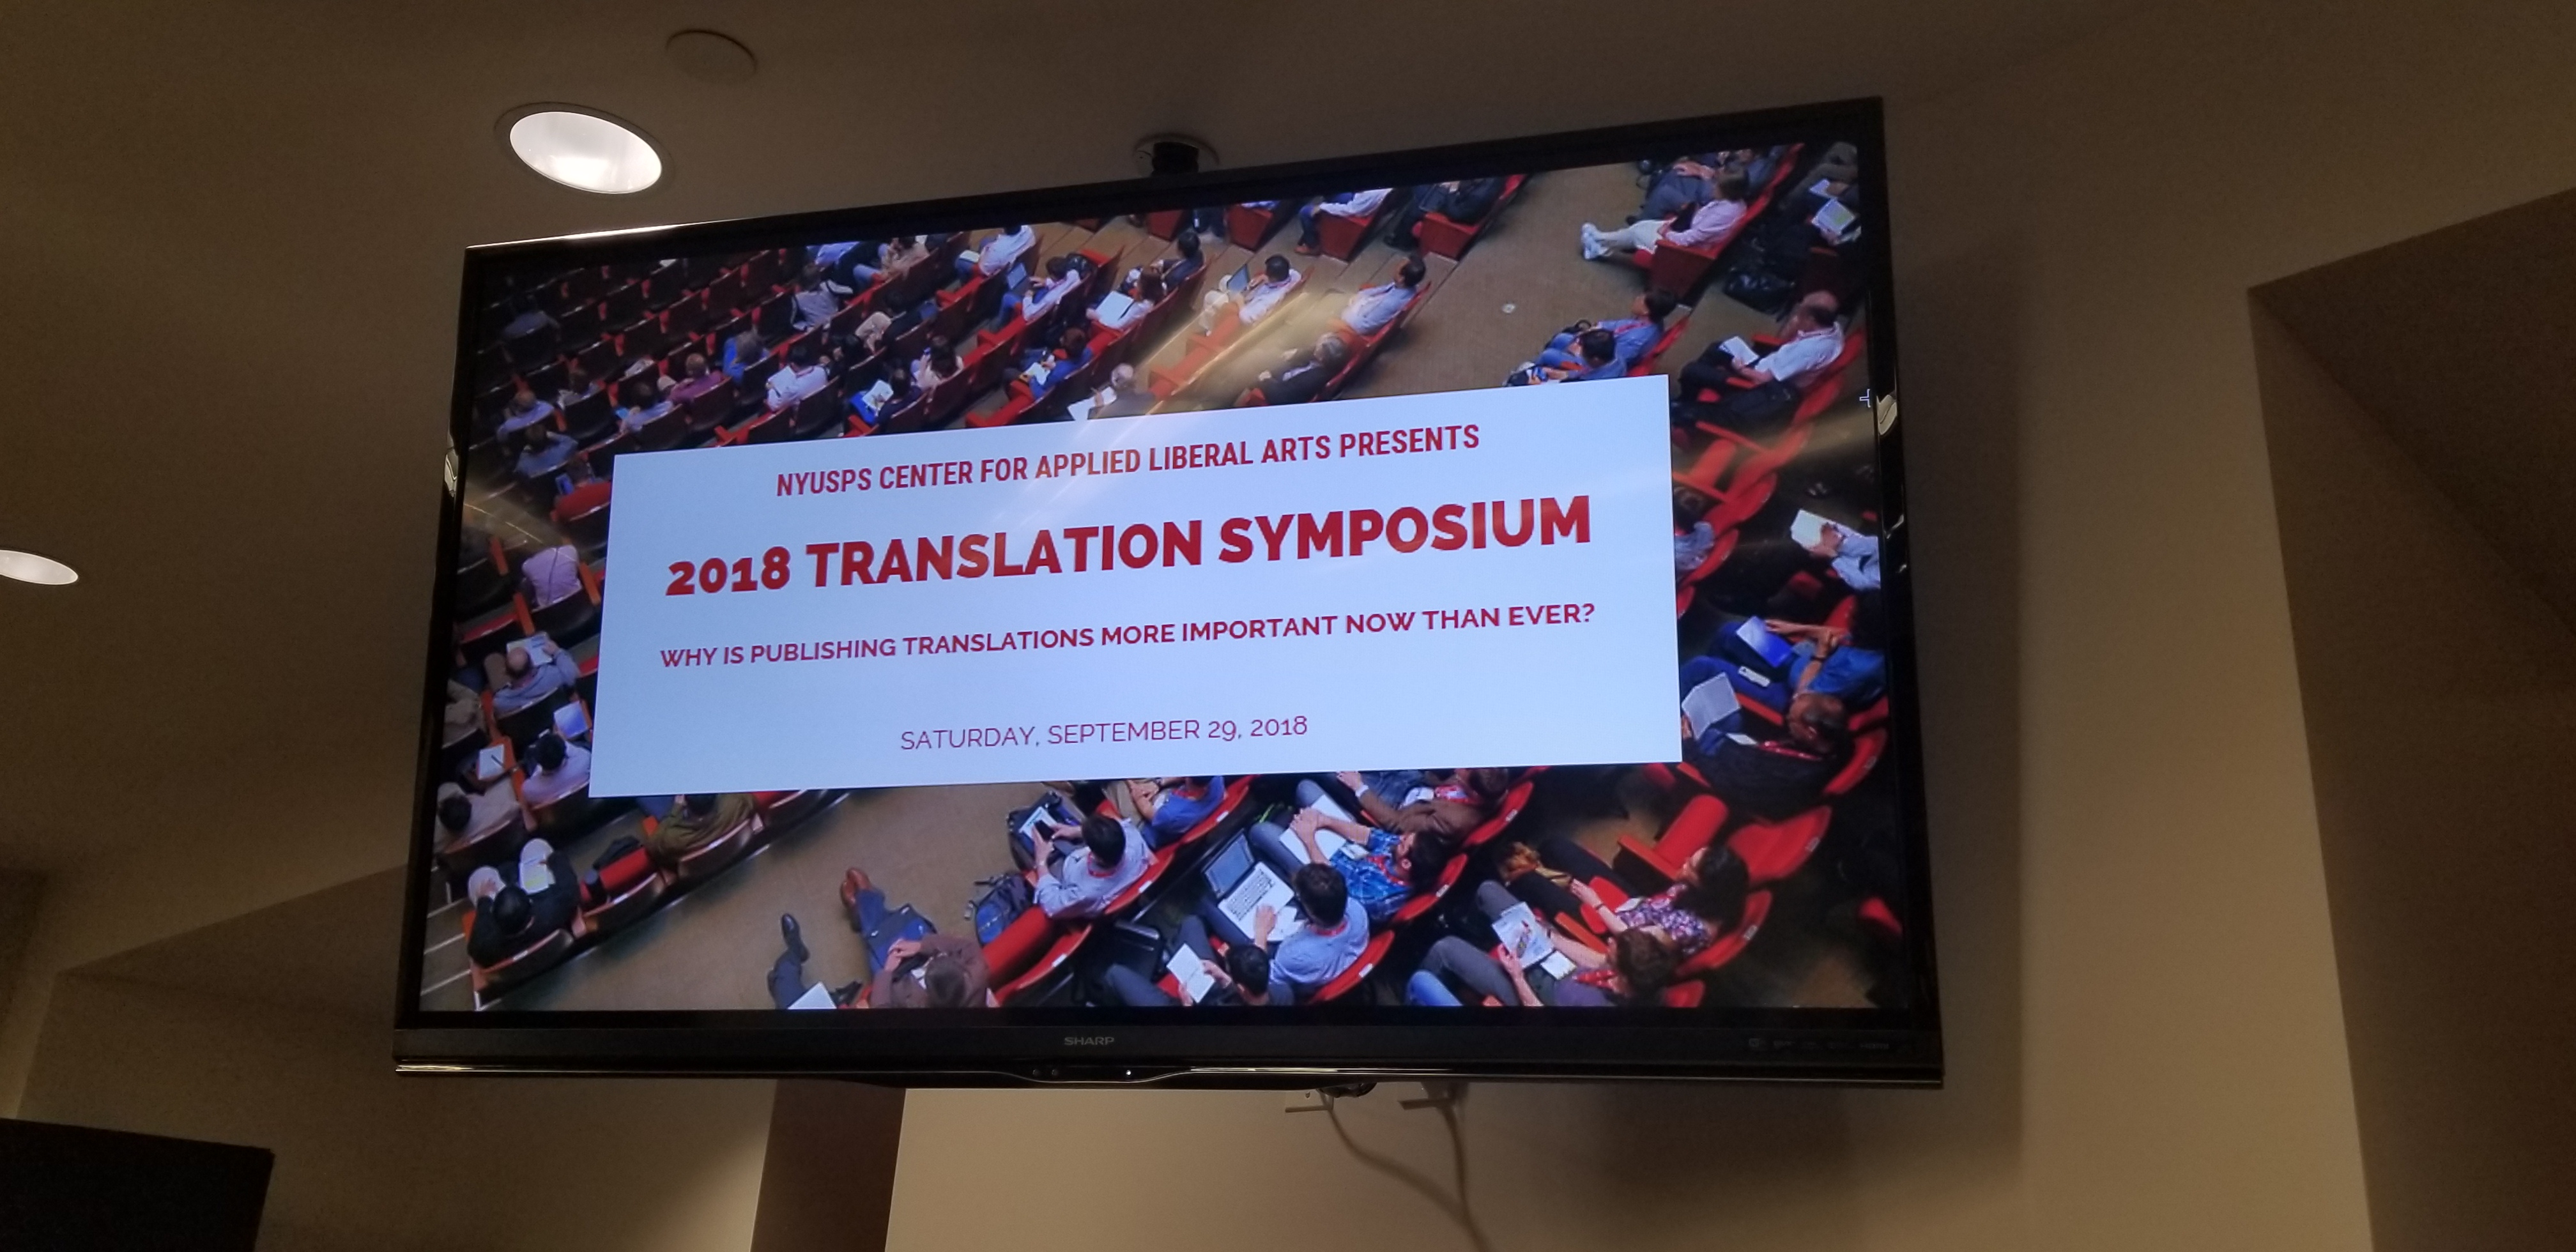 NYUSPS/NSTS 2018 Translation Conference